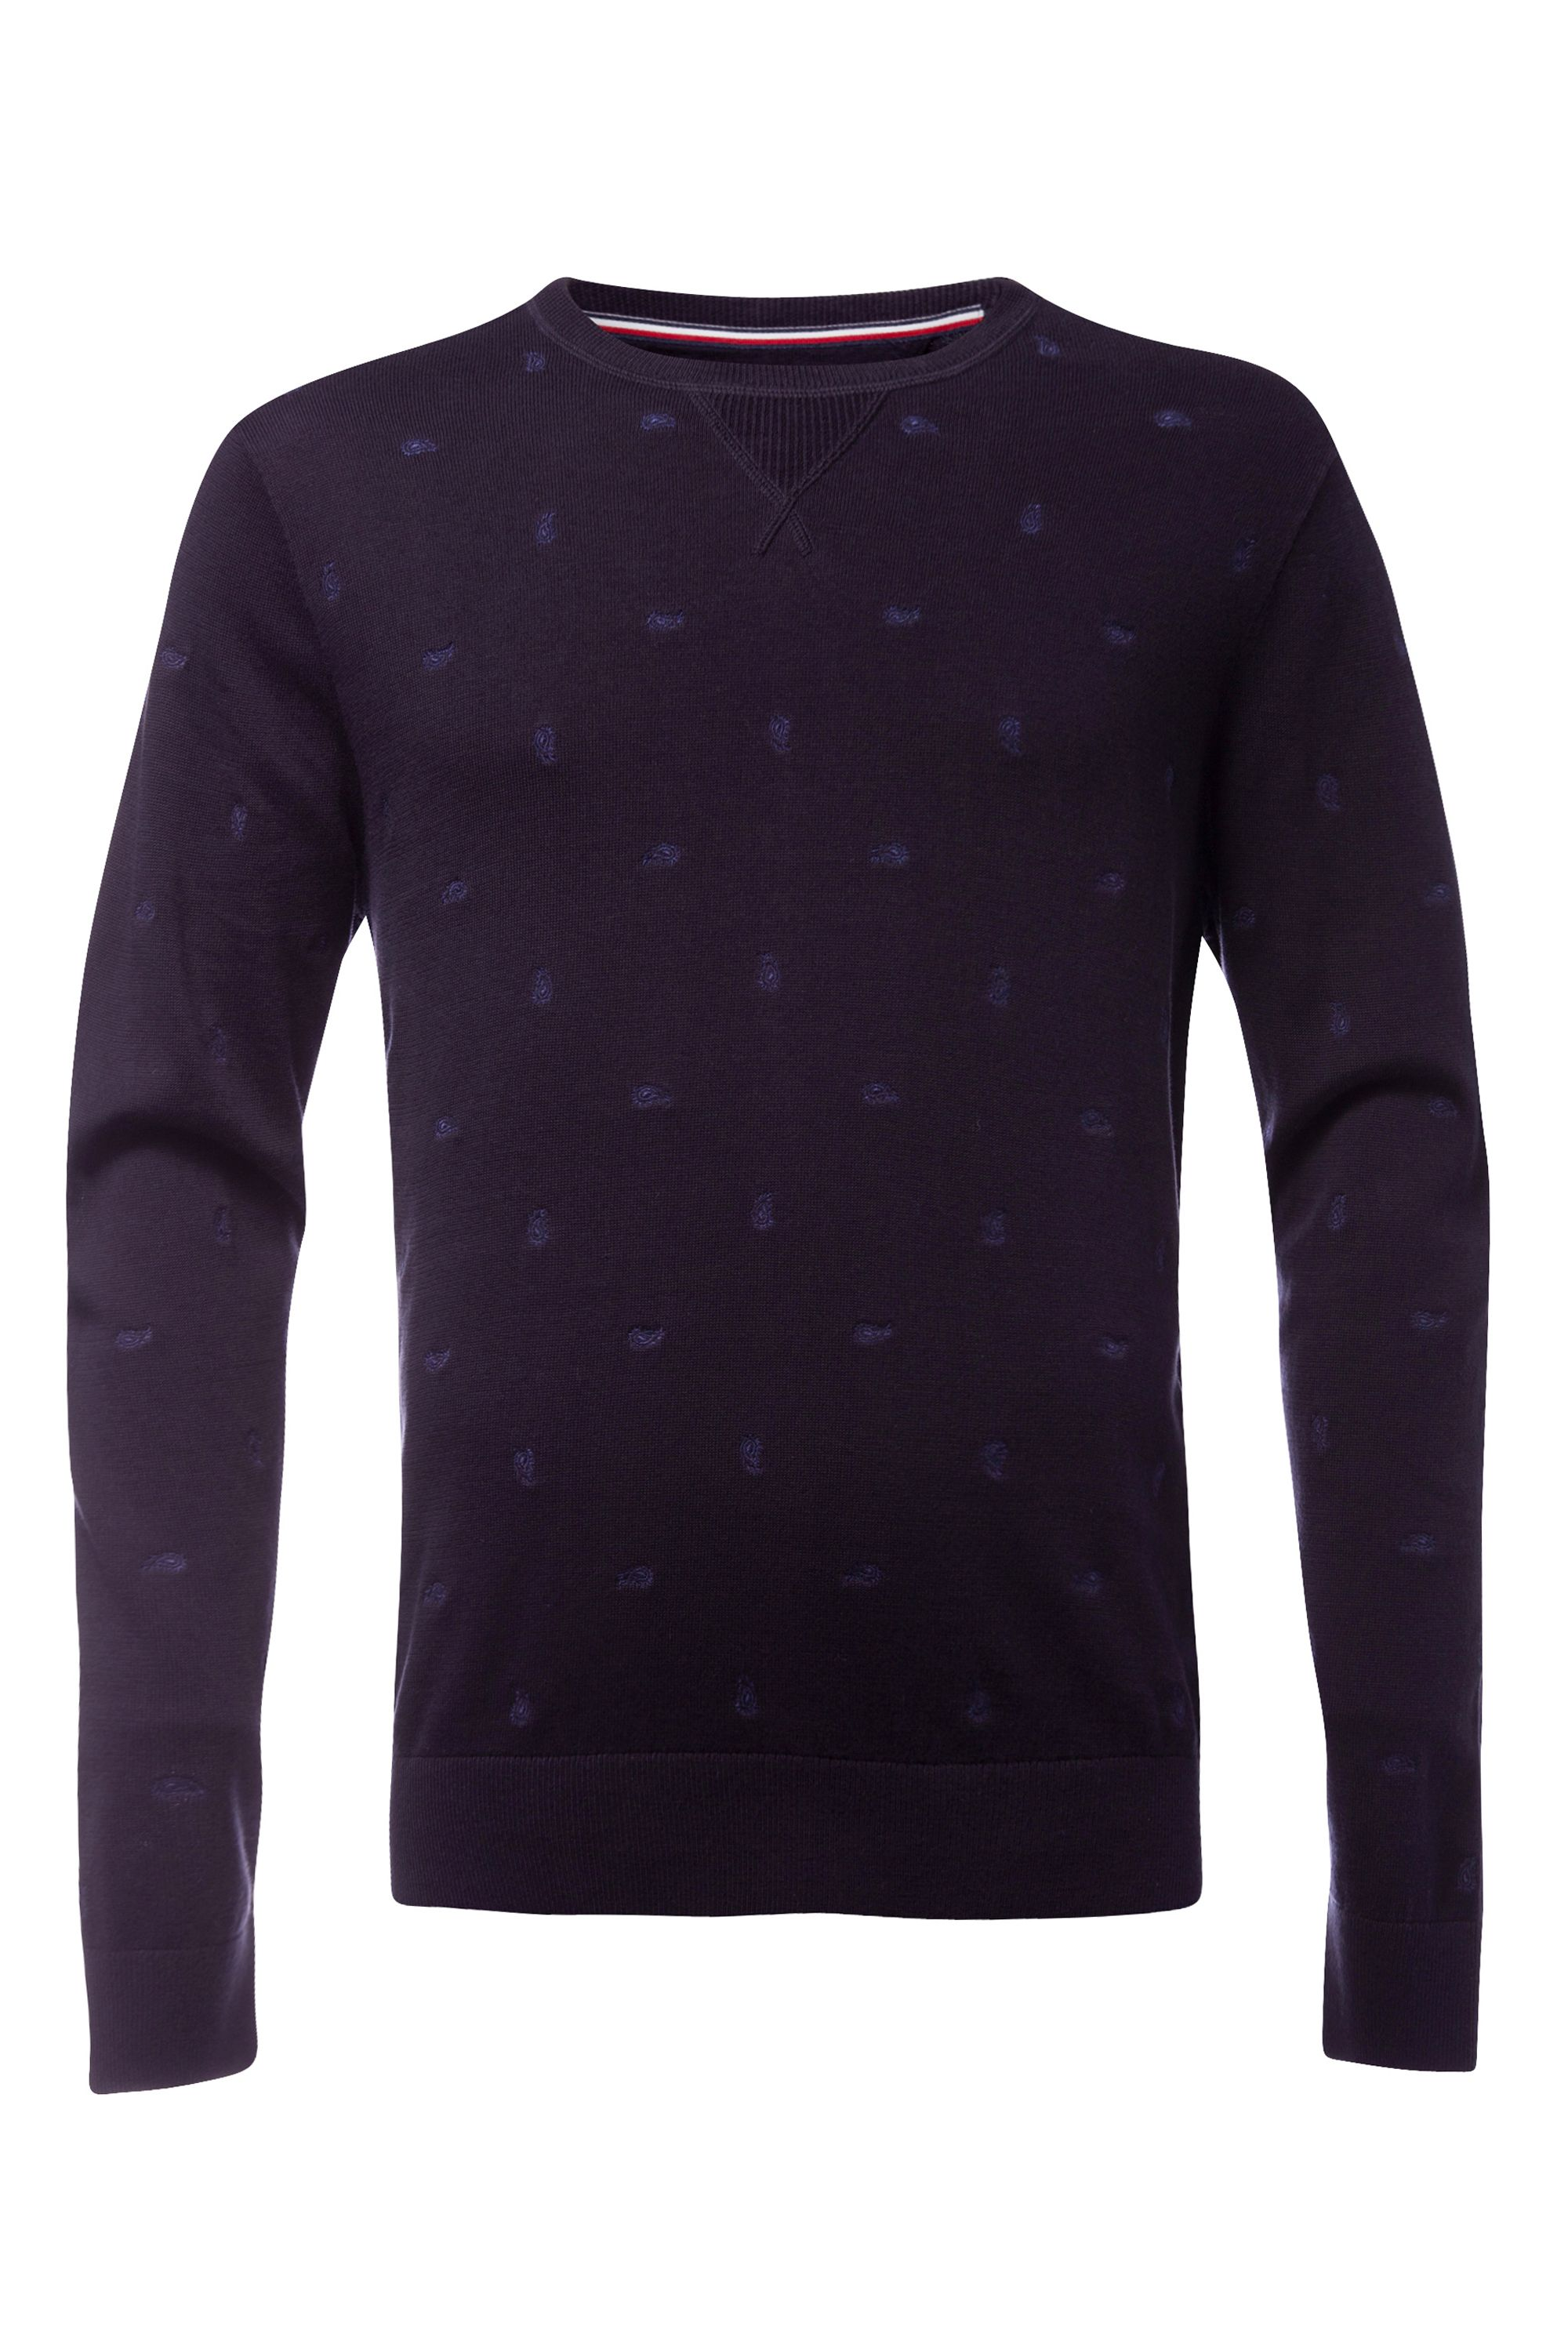 Men's Tommy Hilfiger Harry sweater, Midnight